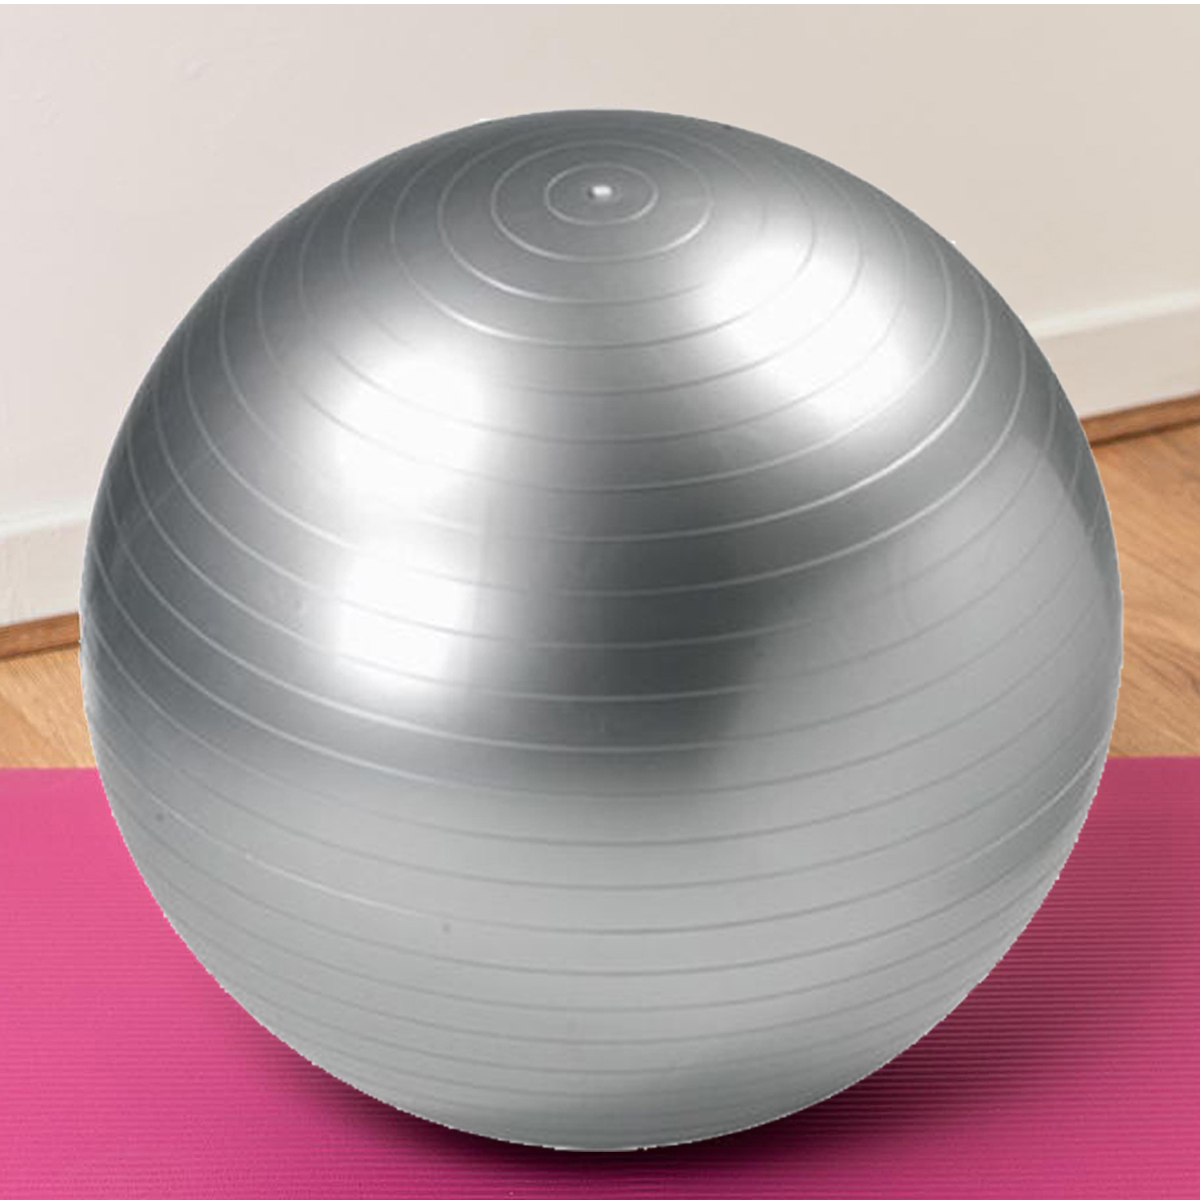 Details about 65CM SILVER GYM BALL SWISS EXERCISE YOGA BALL FITNESS CORE  ABS WEIGHT LOSS SPORT d7582aca7